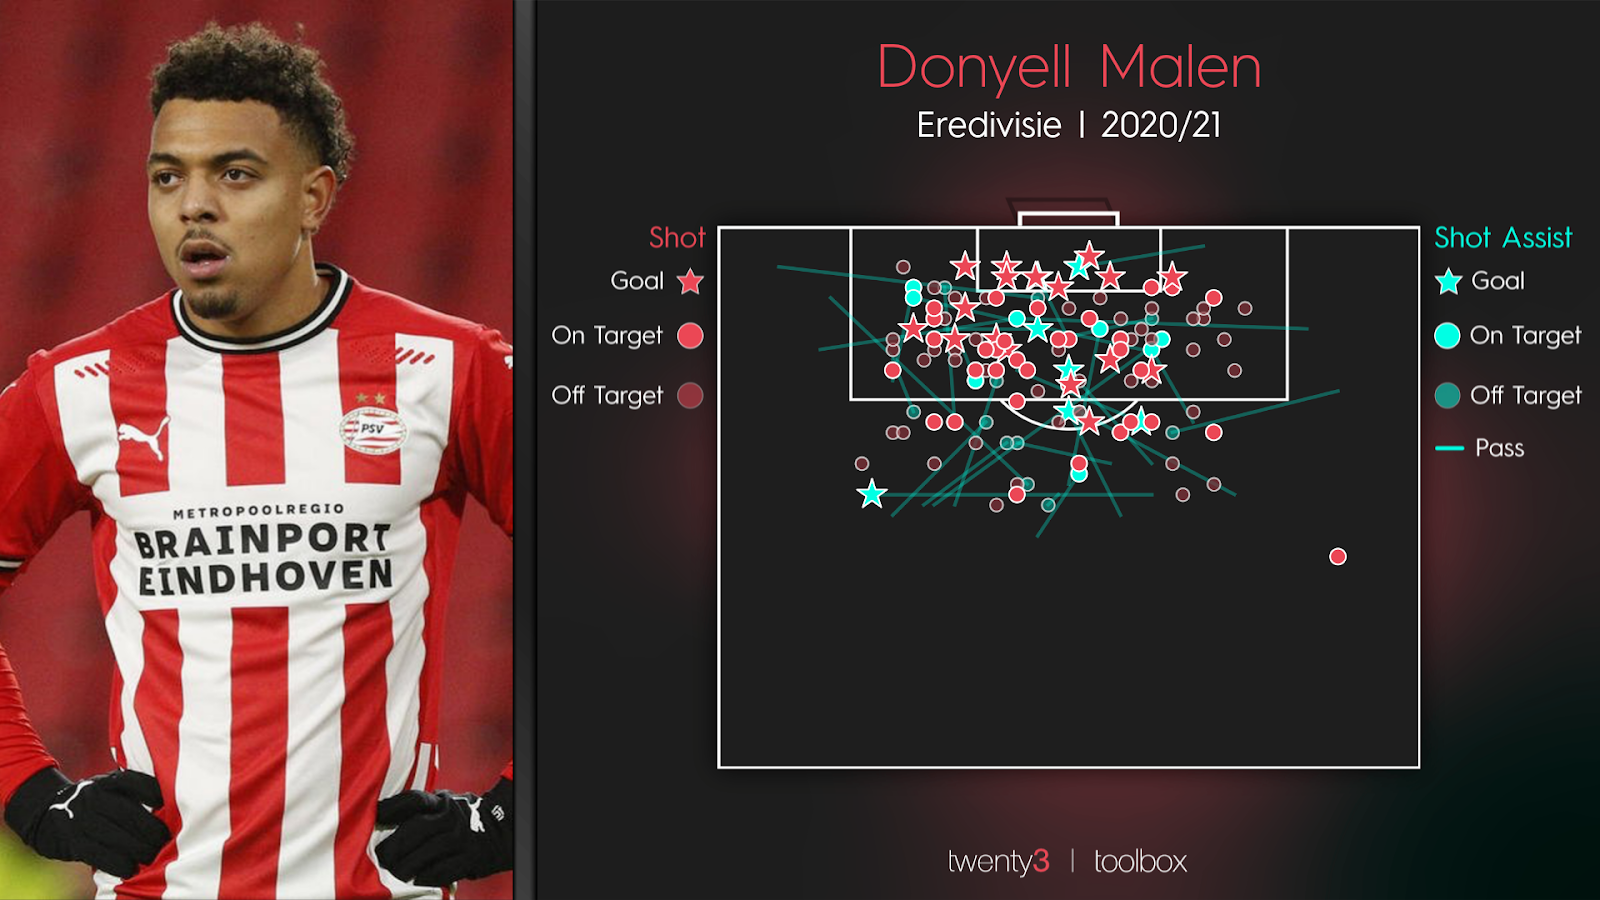 Donyell Malen's shot and shot assist map for the 2020/21 campaign.